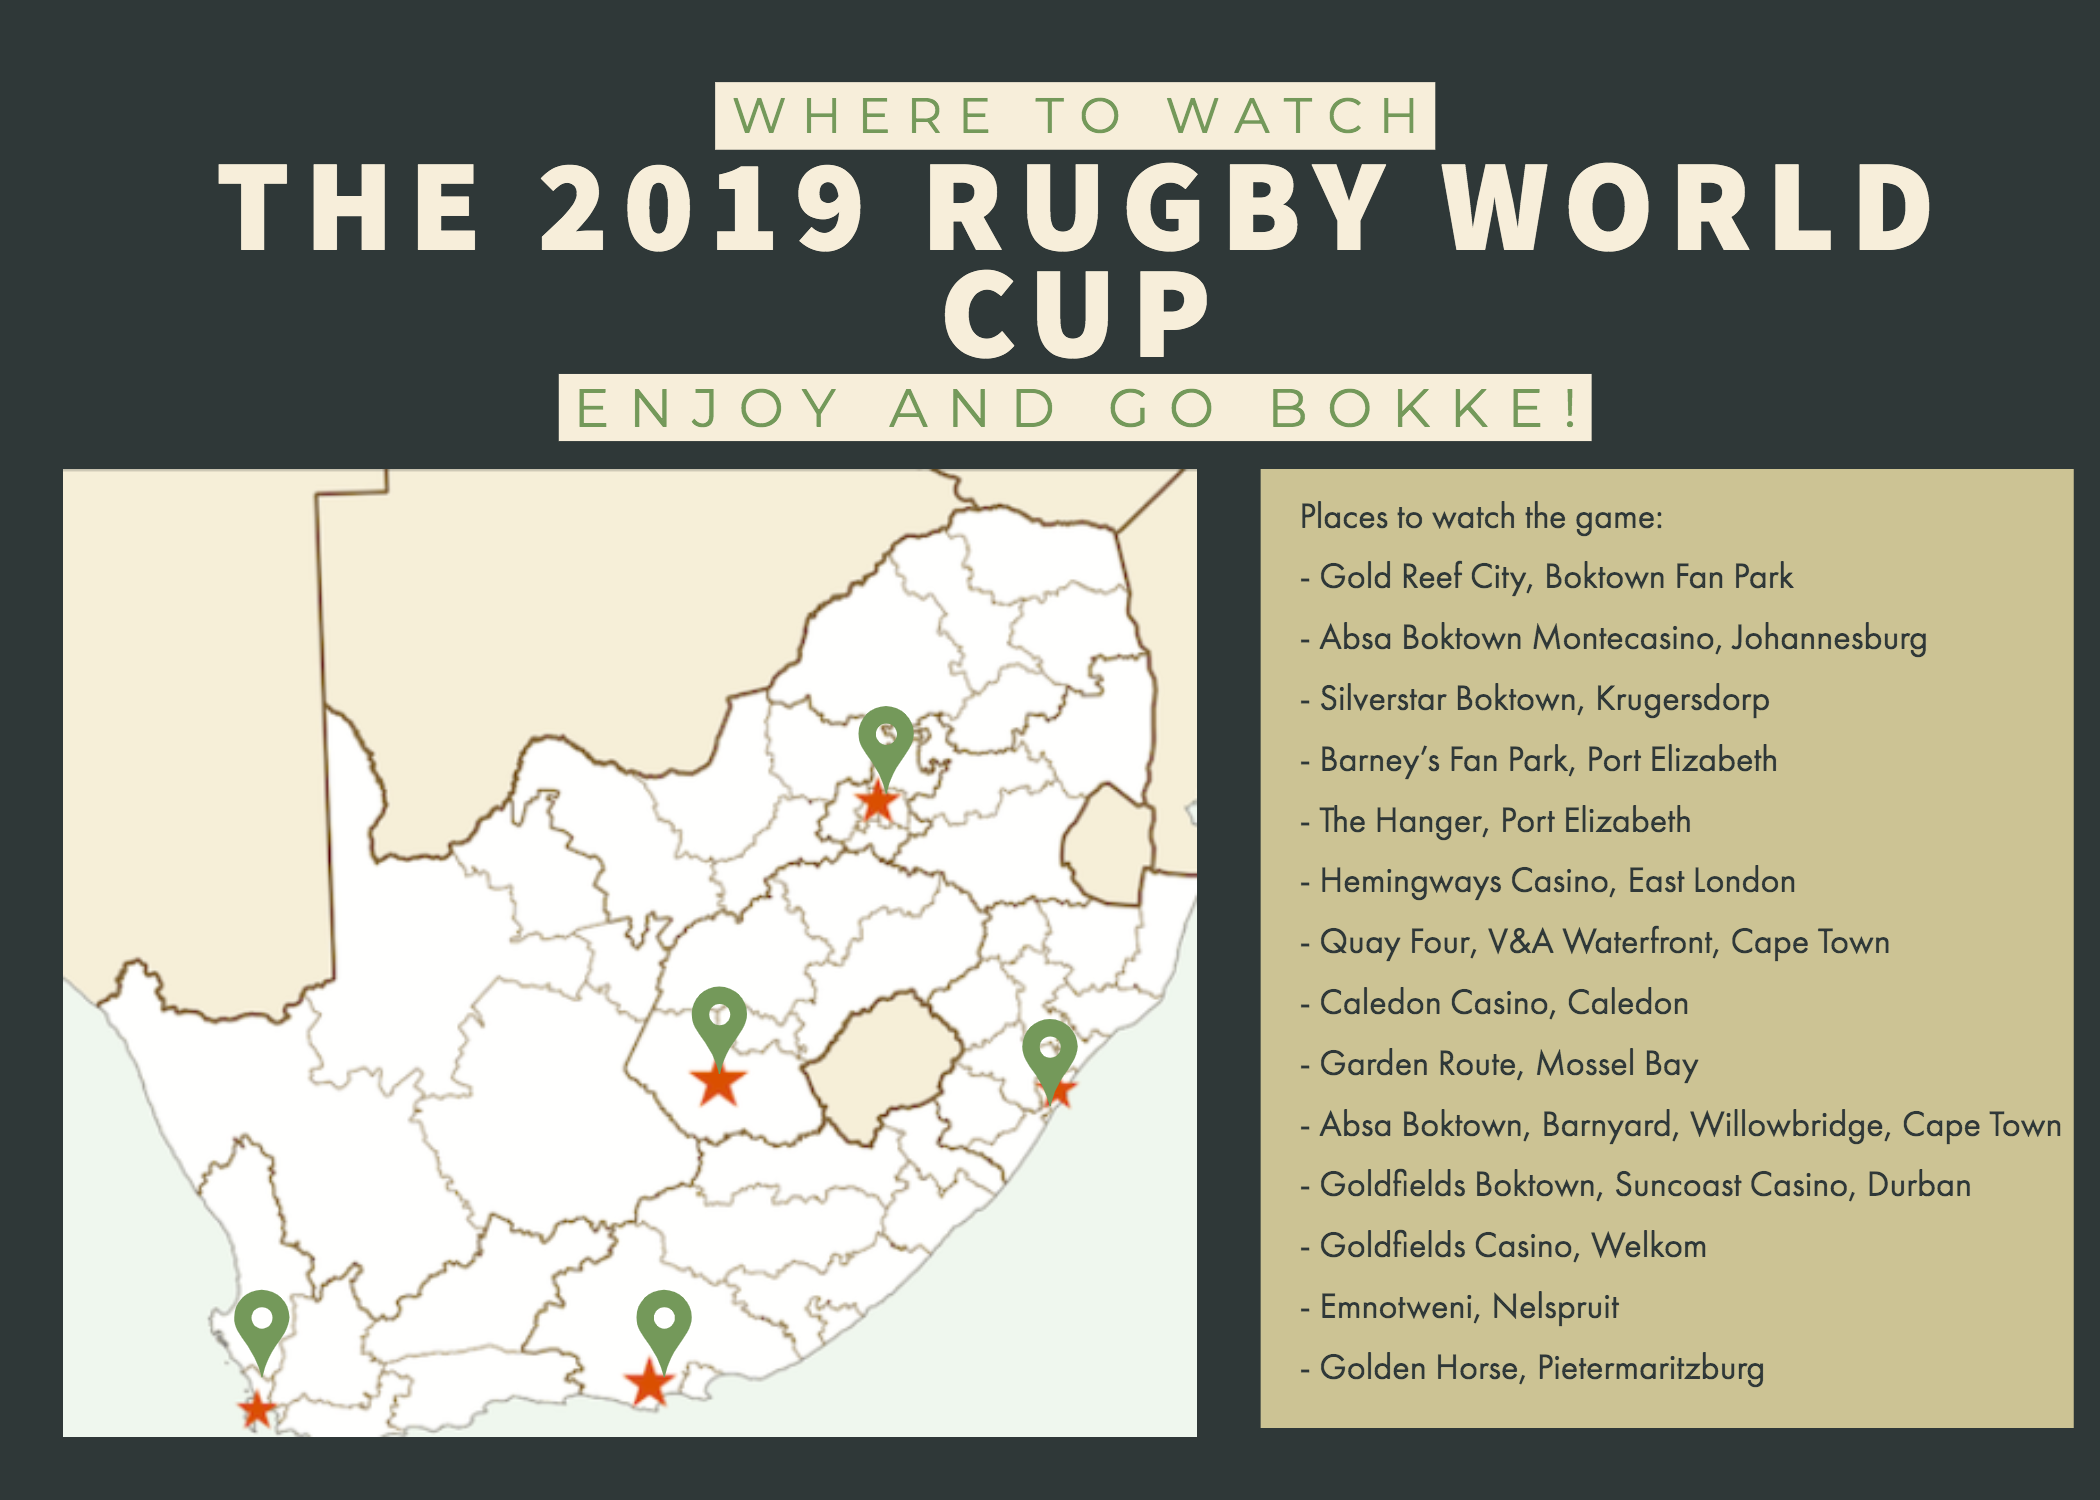 Infographic of places to watch the final game of the 2019 Rugby World Cup